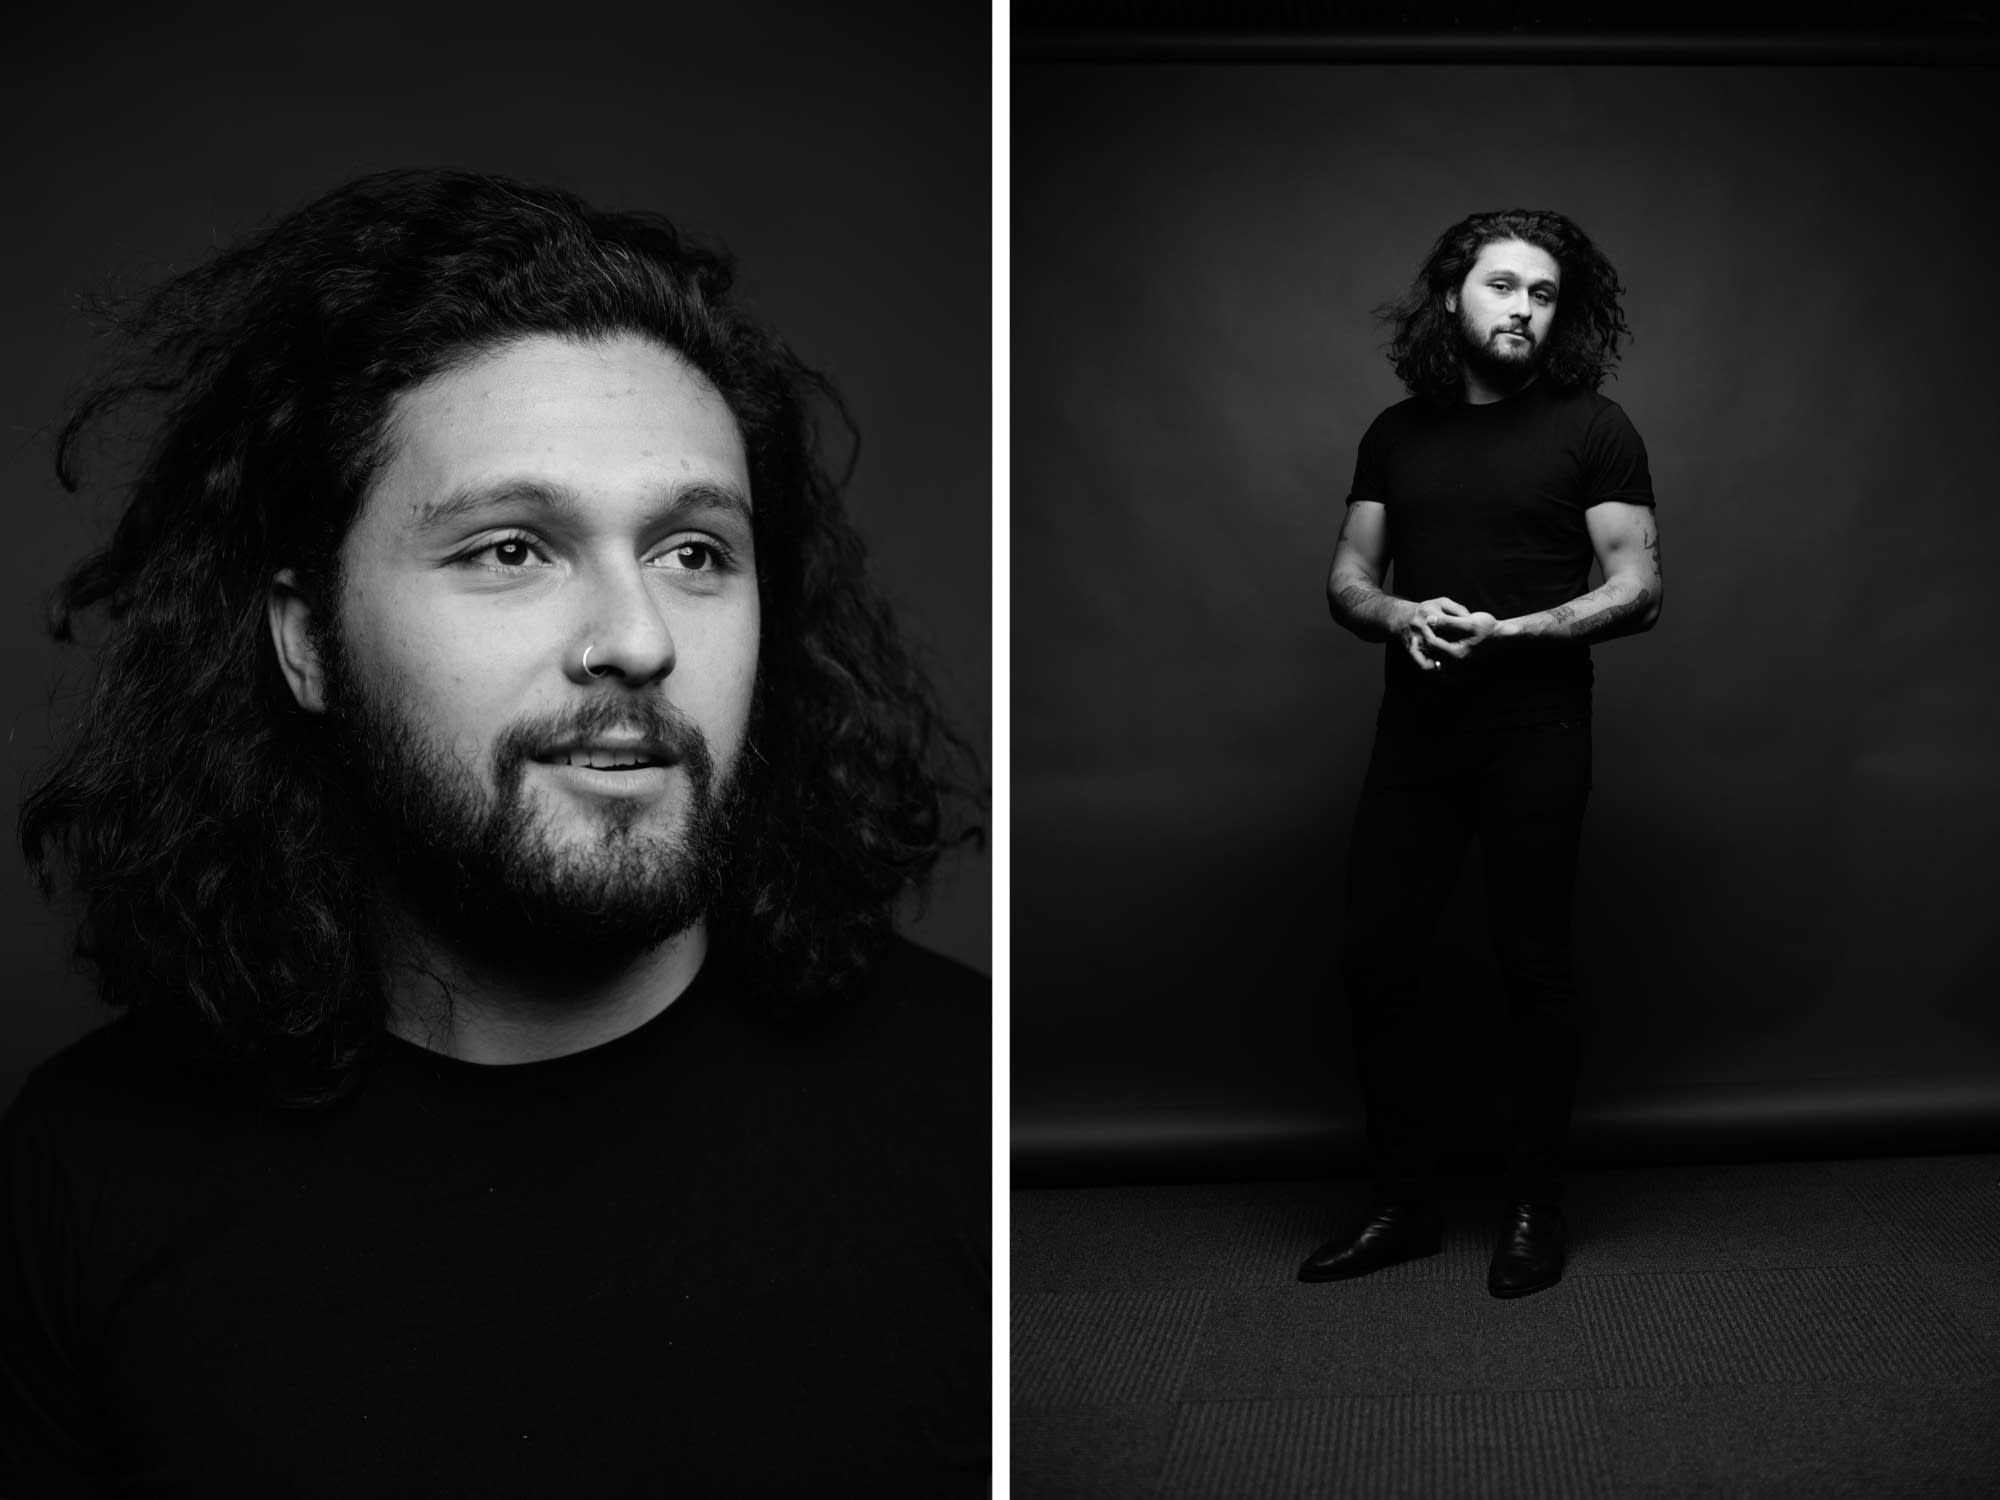 David Le'aupepe of Gang of Youths, portraits at The Current